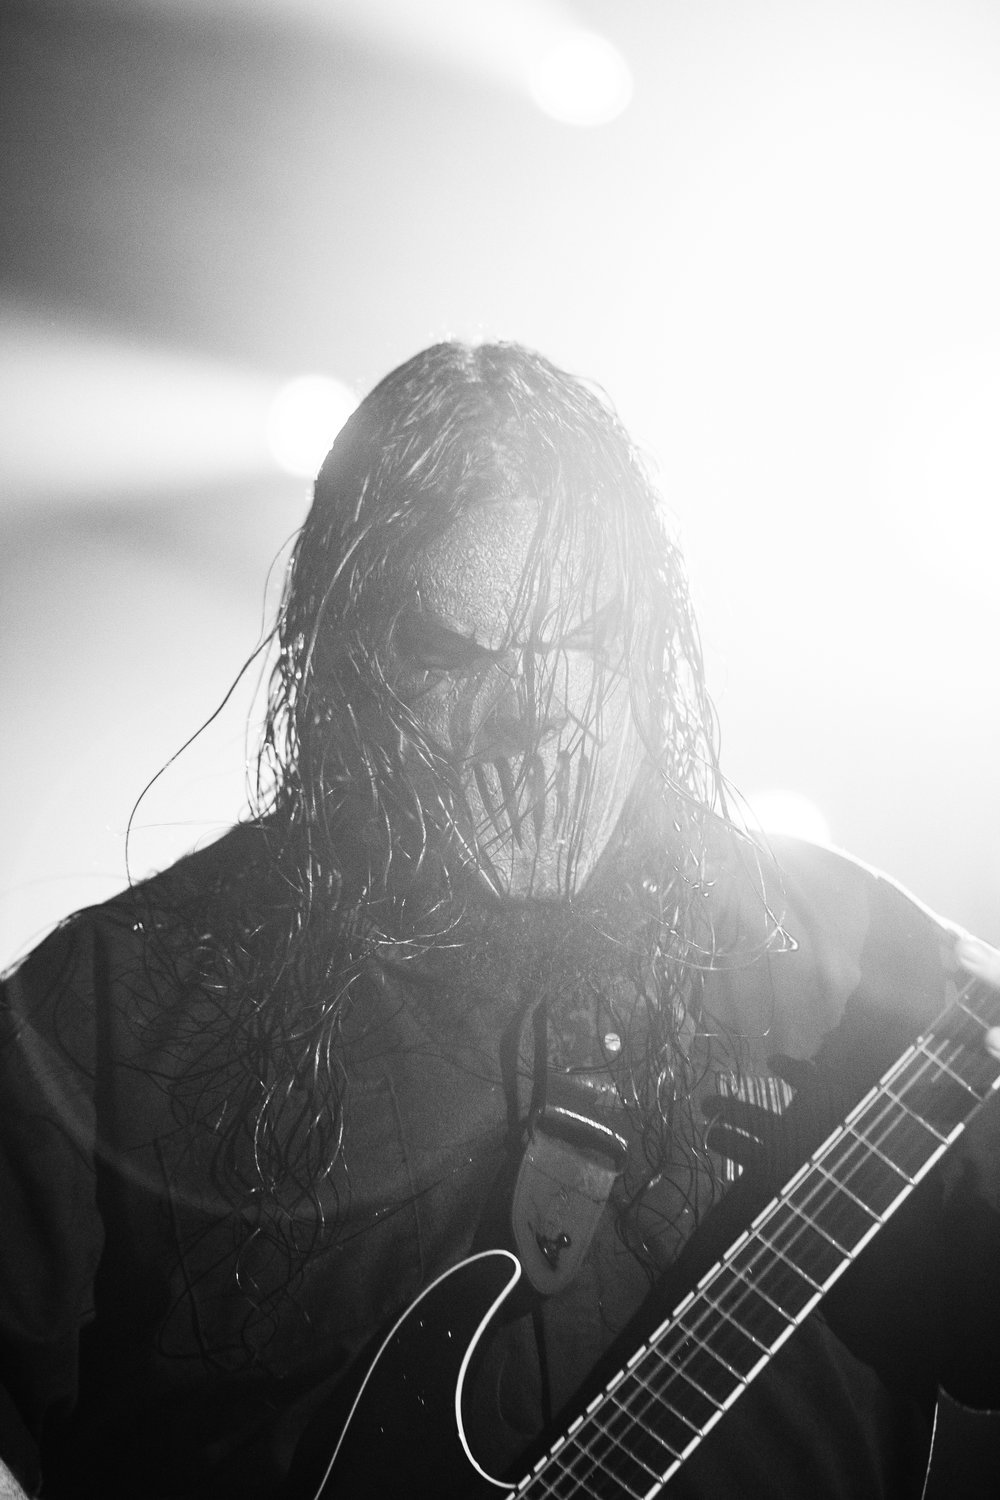 Unreleased image of Mick Thompson of Slipknot. They were so fun to shoot.